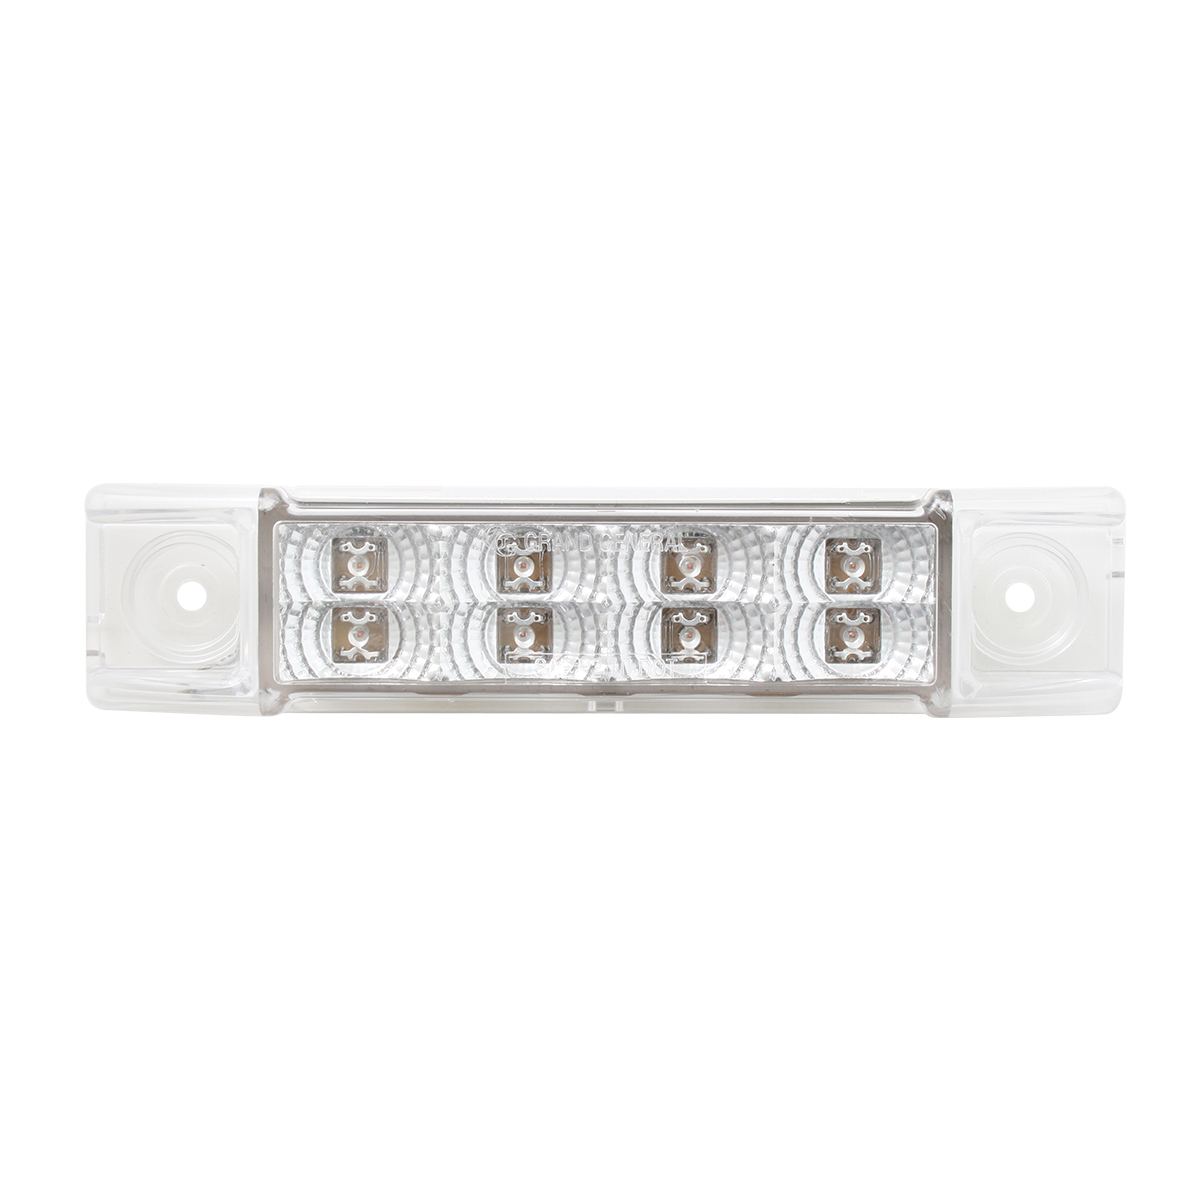 Rectangular Spyder Dual Function LED Light in Clear Lens